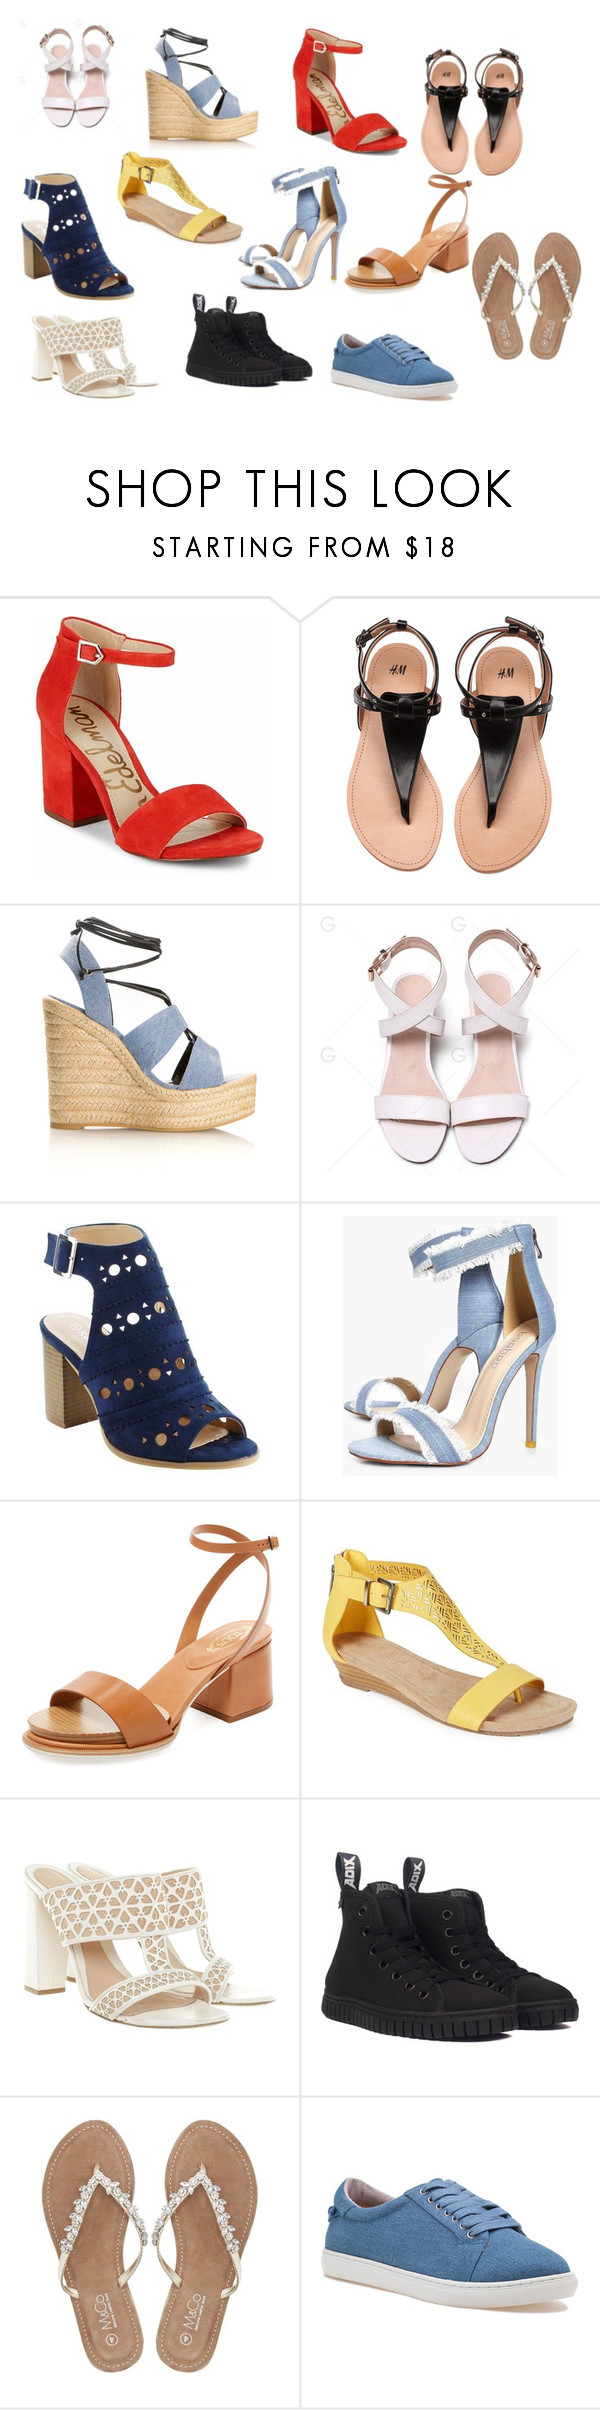 """""""Horace Somnusson (shoes)"""" by elenahimekirari ❤ liked on Polyvore featuring Sam Edelman, Yves Saint Laurent, Boohoo, Tod's, Kenneth Cole Reaction, Alexander McQueen, M&Co and J/Slides"""